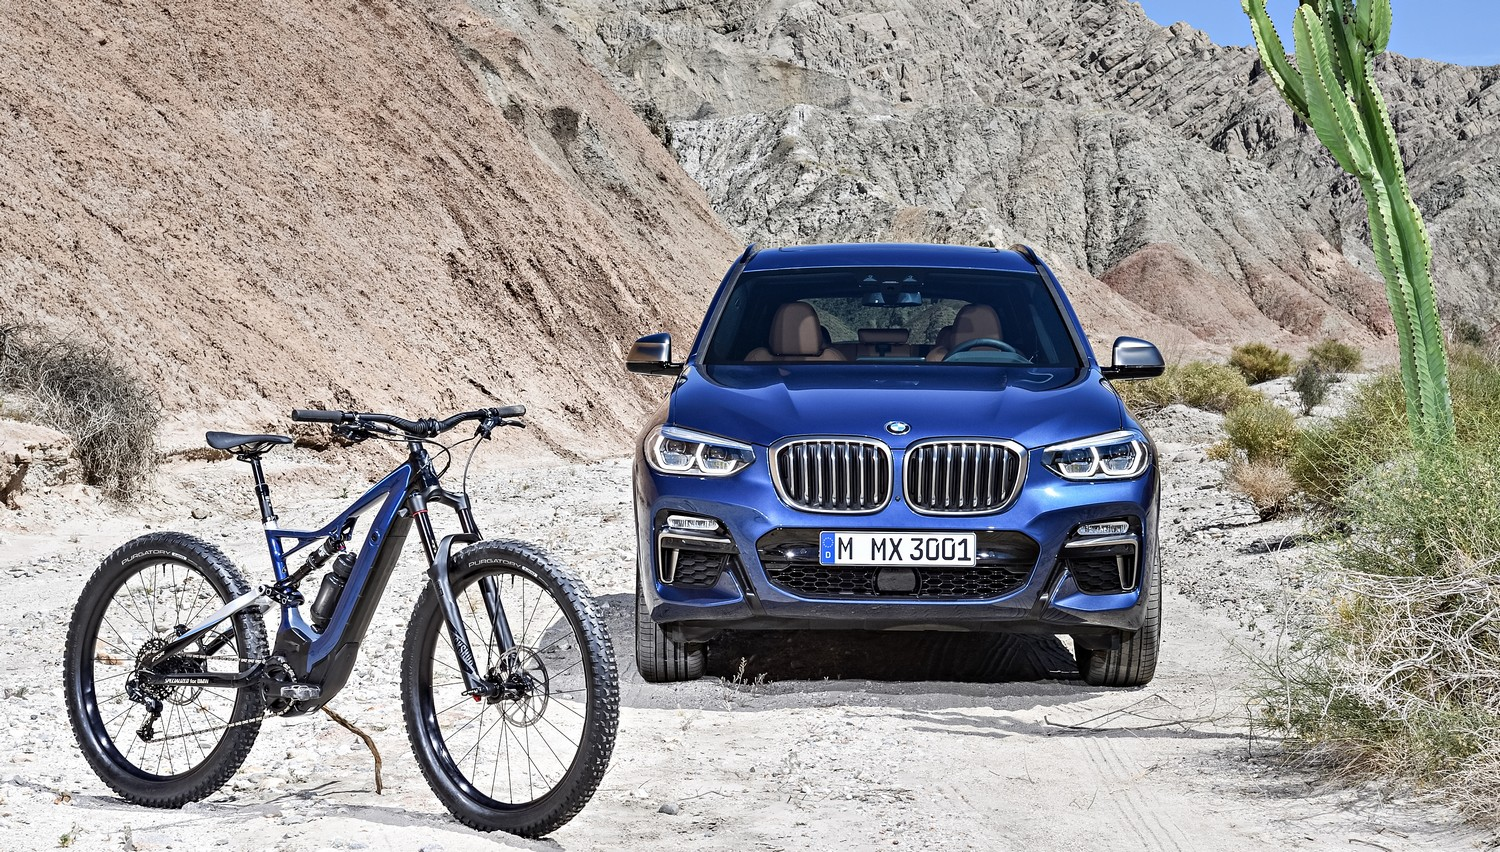 BMW launches special edition all-terrain e-bike inspired by the new X3